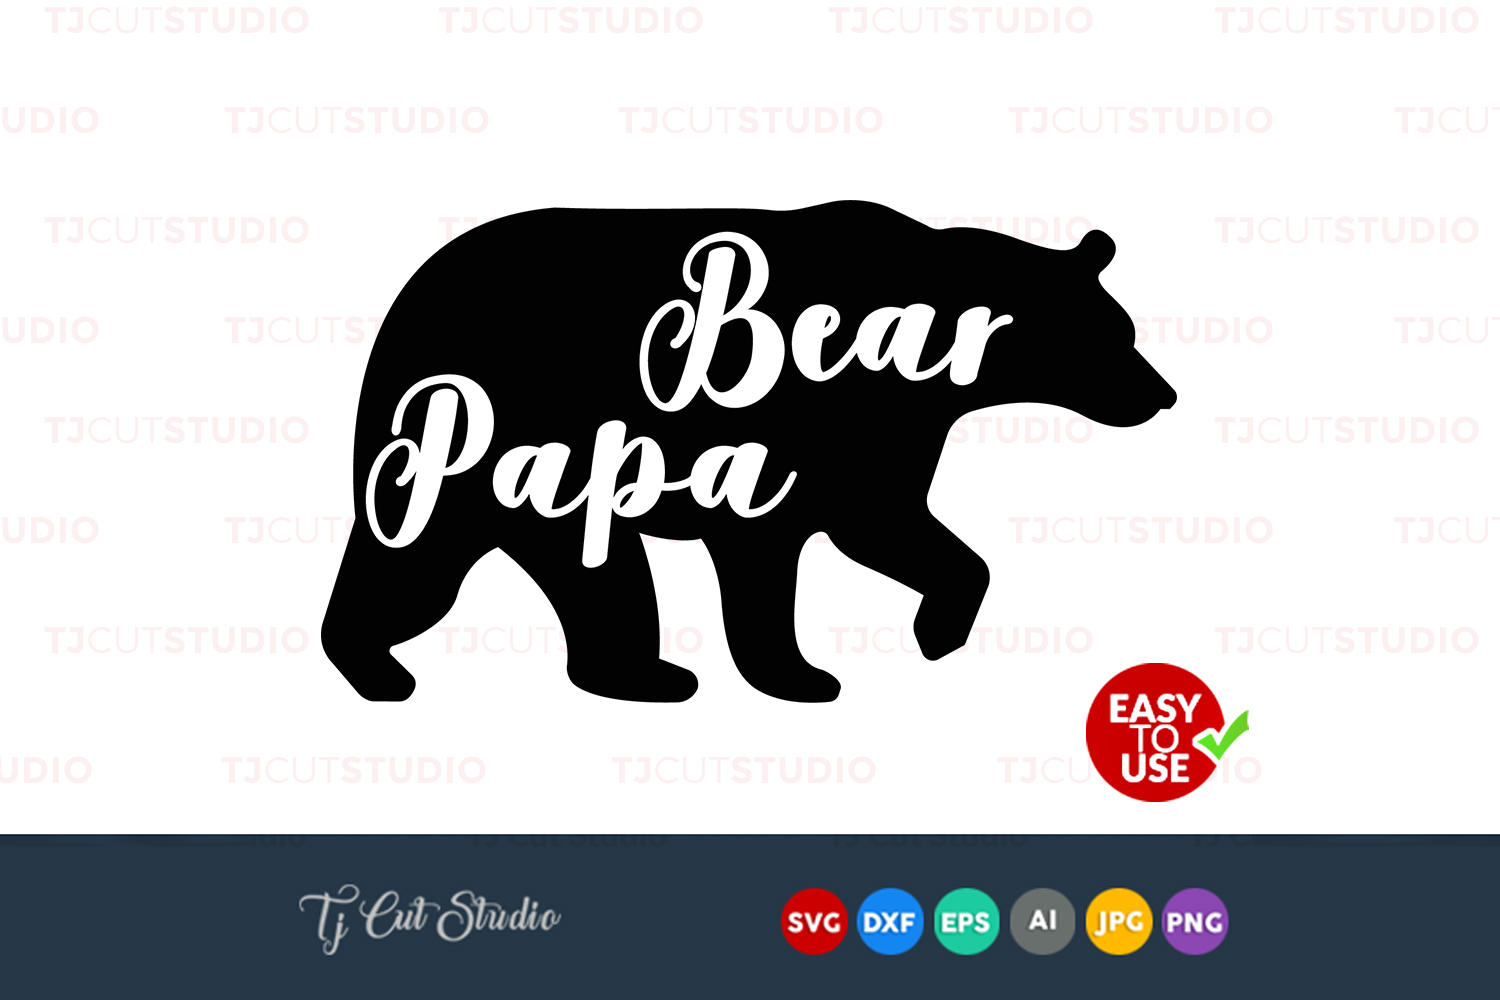 Papa bear svg, papa bear, bear svg, Files for Silhouette Cameo or Cricut, Commercial & Personal Use. example image 1